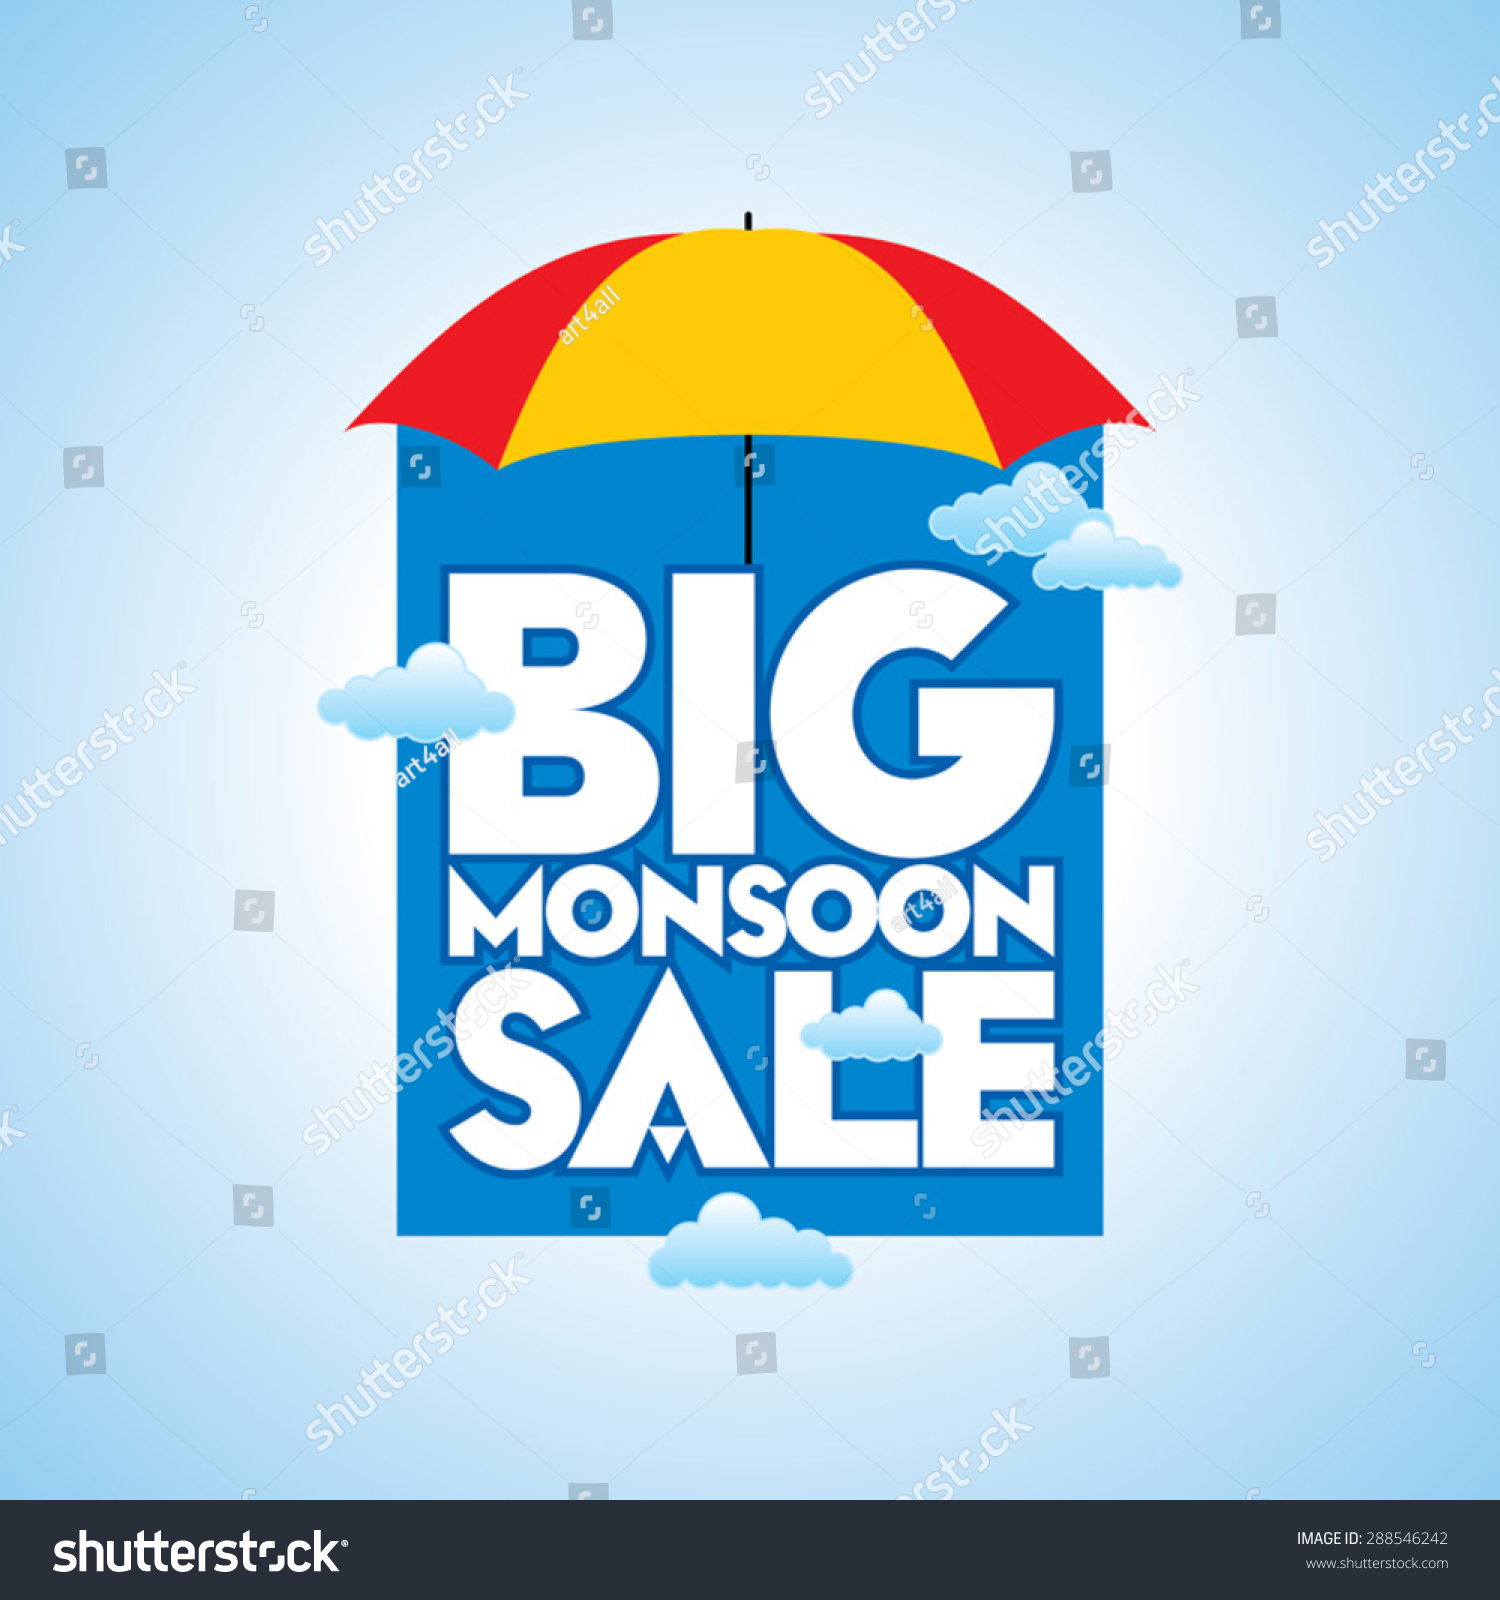 Complete list of all Monsoon Discount Codes for December guaranteed! 20% off at Monsoon, Grab 20% off Everything at Monsoon, 15% off at Monsoon, For full functionality of this site it is necessary to enable JavaScript.5/5(1).